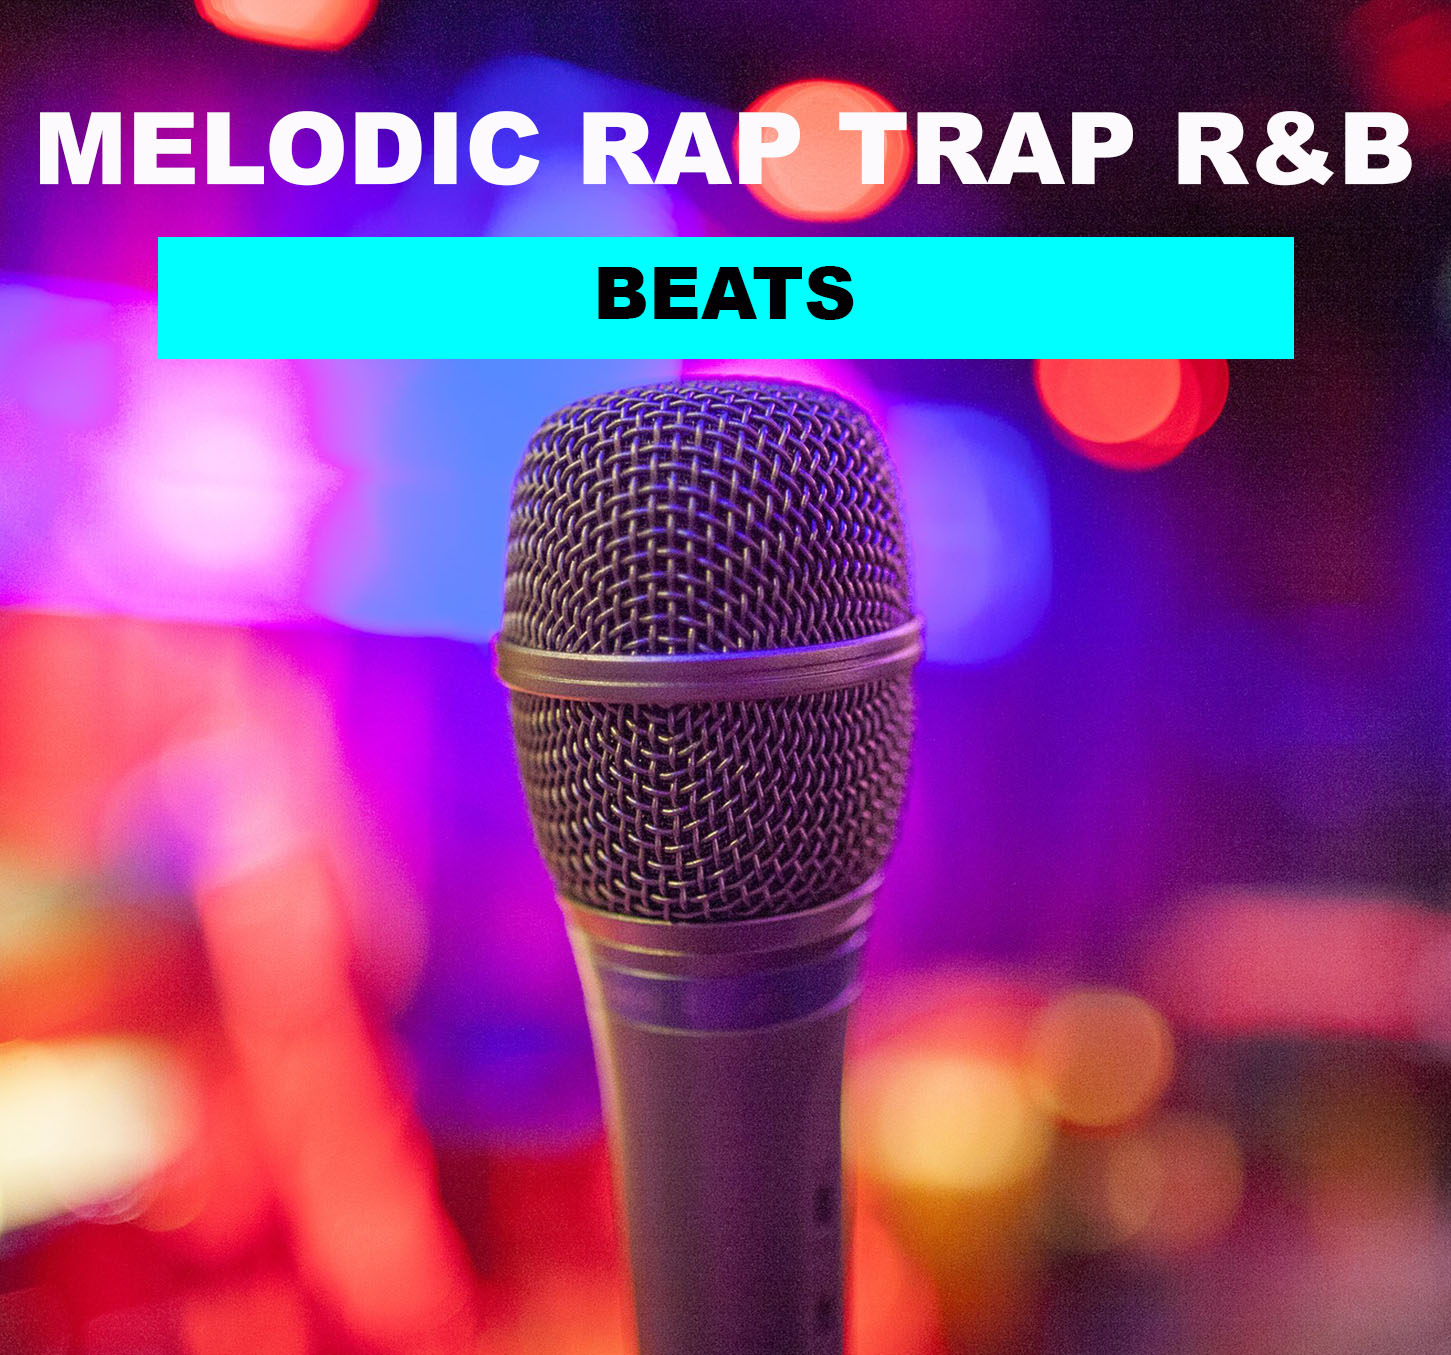 melodic rap trap R&B beats